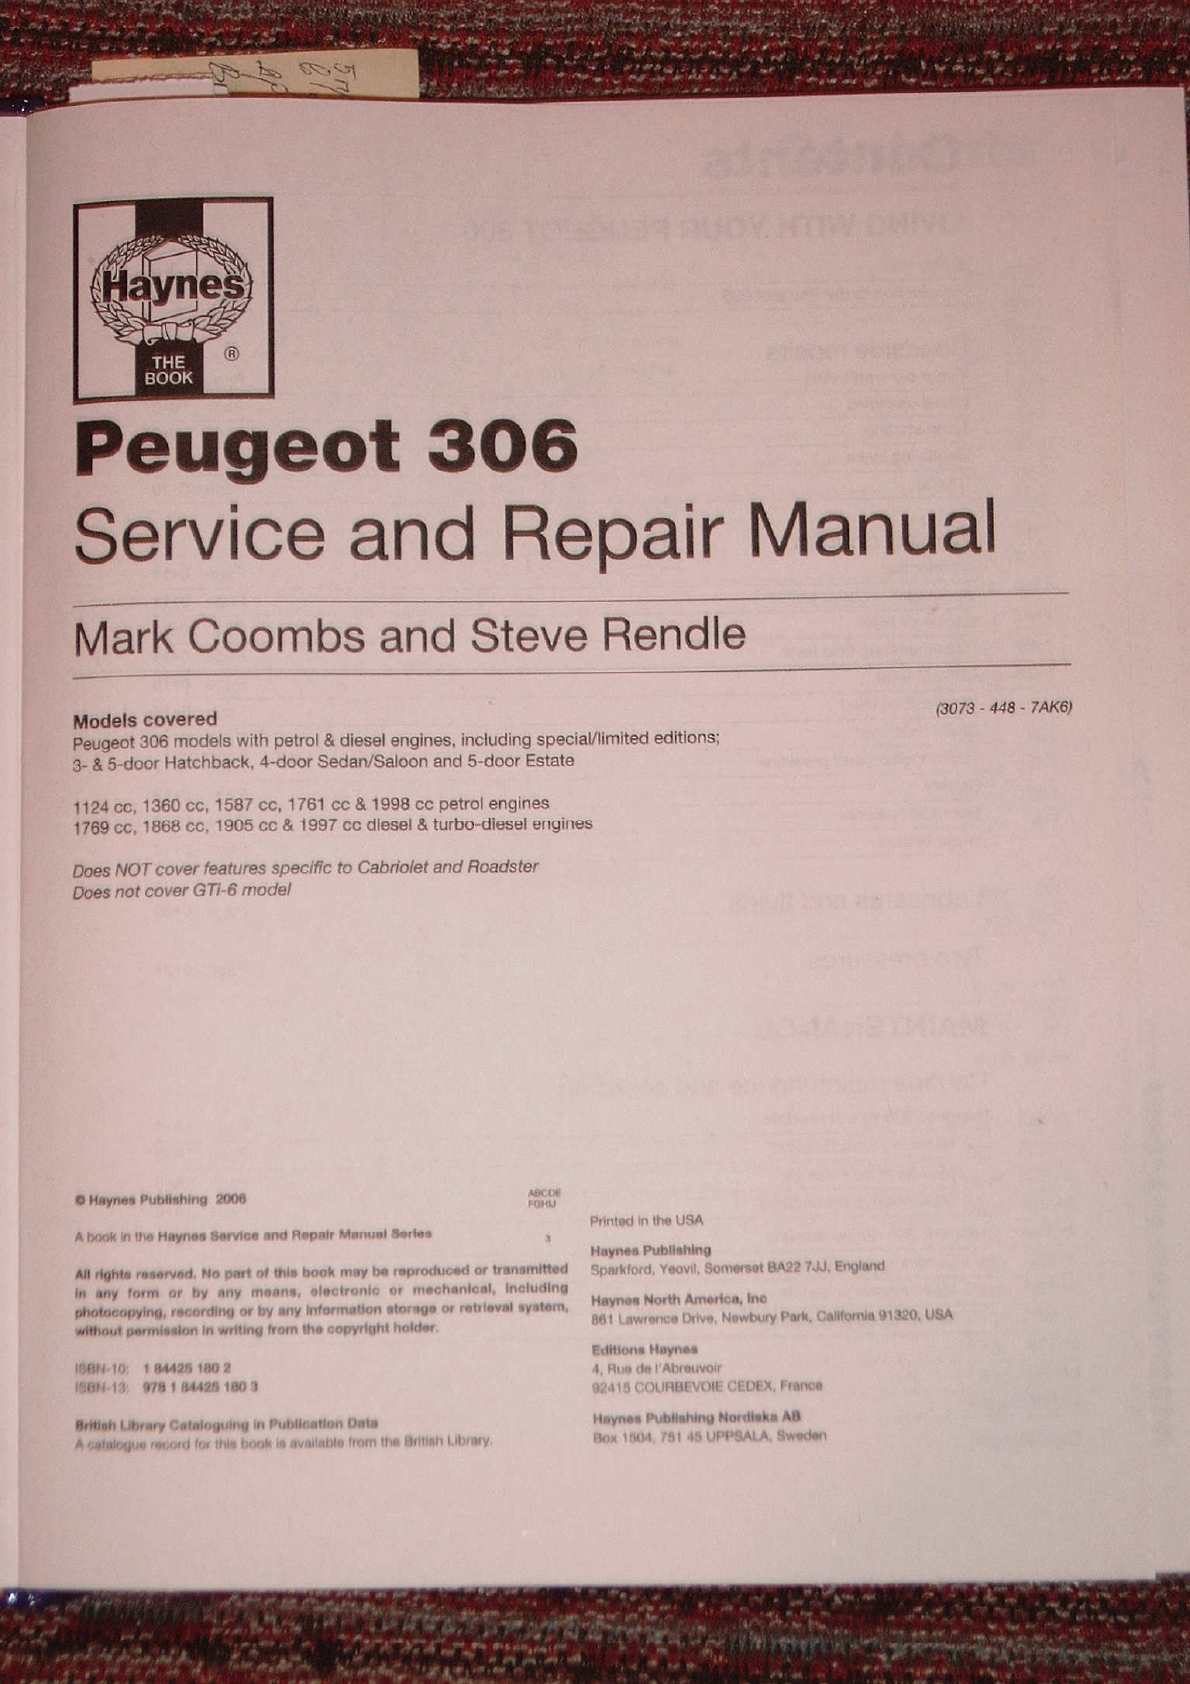 Peugeot 306 Workshop Manual Haynes Pdf Manual Car Car Workshop Manual